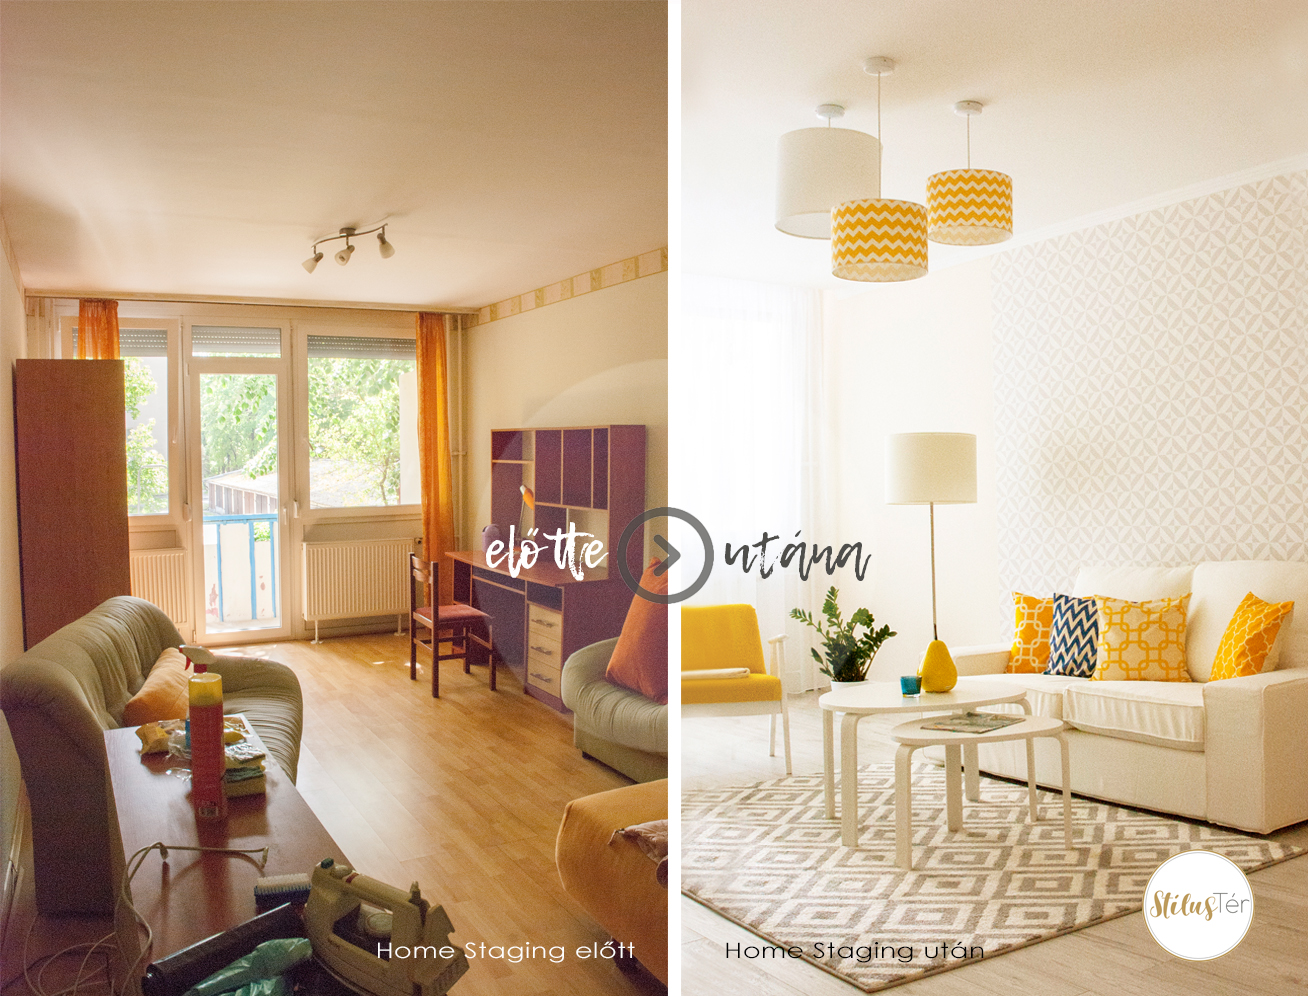 szeged_home_staging_nappali_1.jpg